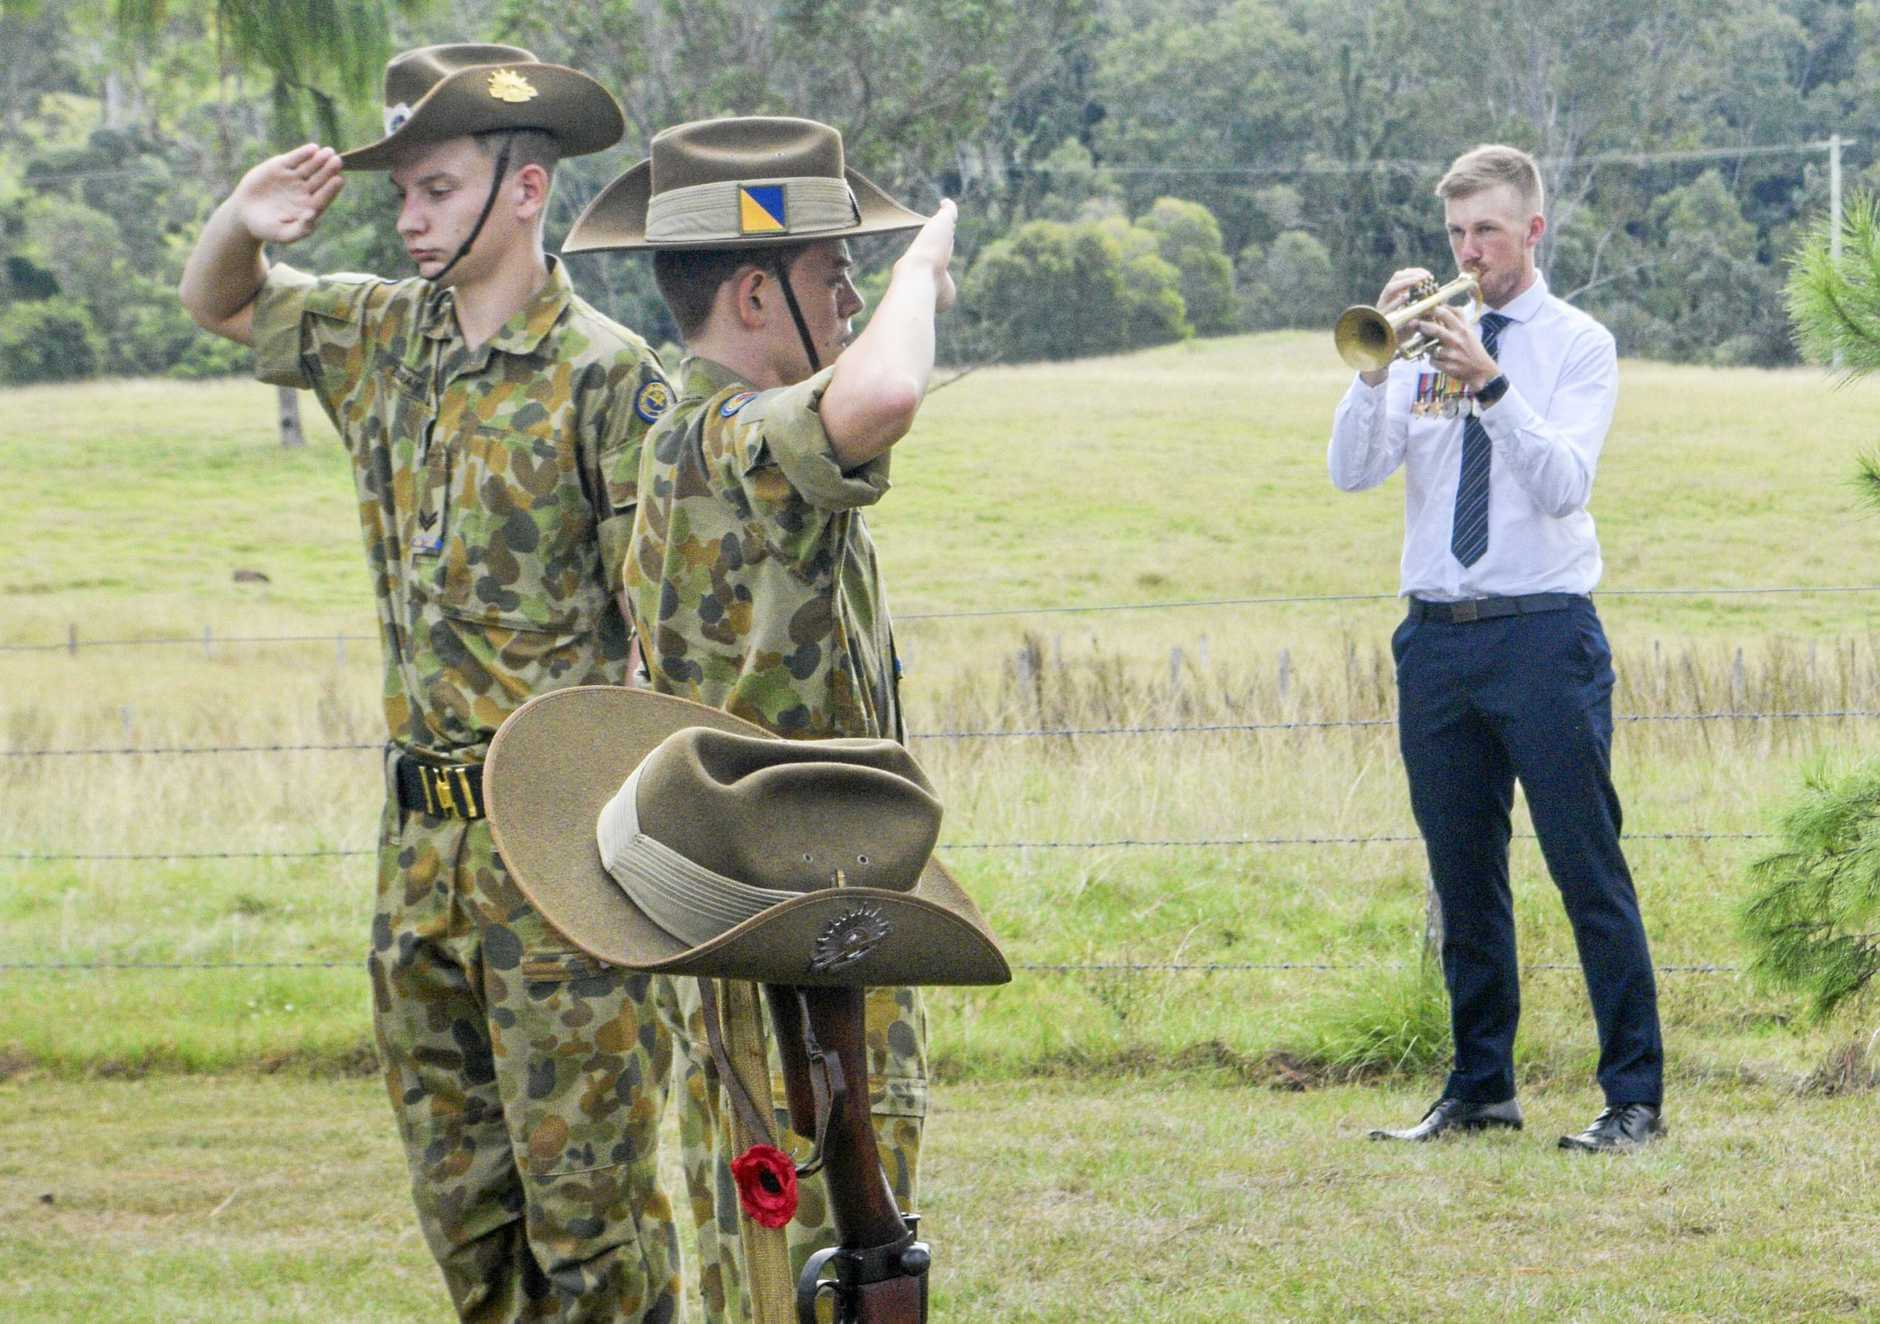 LEST WE FORGET: Garrett Salter plays The Last Post as the 24th Australian Army Cadets (Grafton) salute the fallen and those who have served the country at the Ramornie Anzac service on Sunday morning.